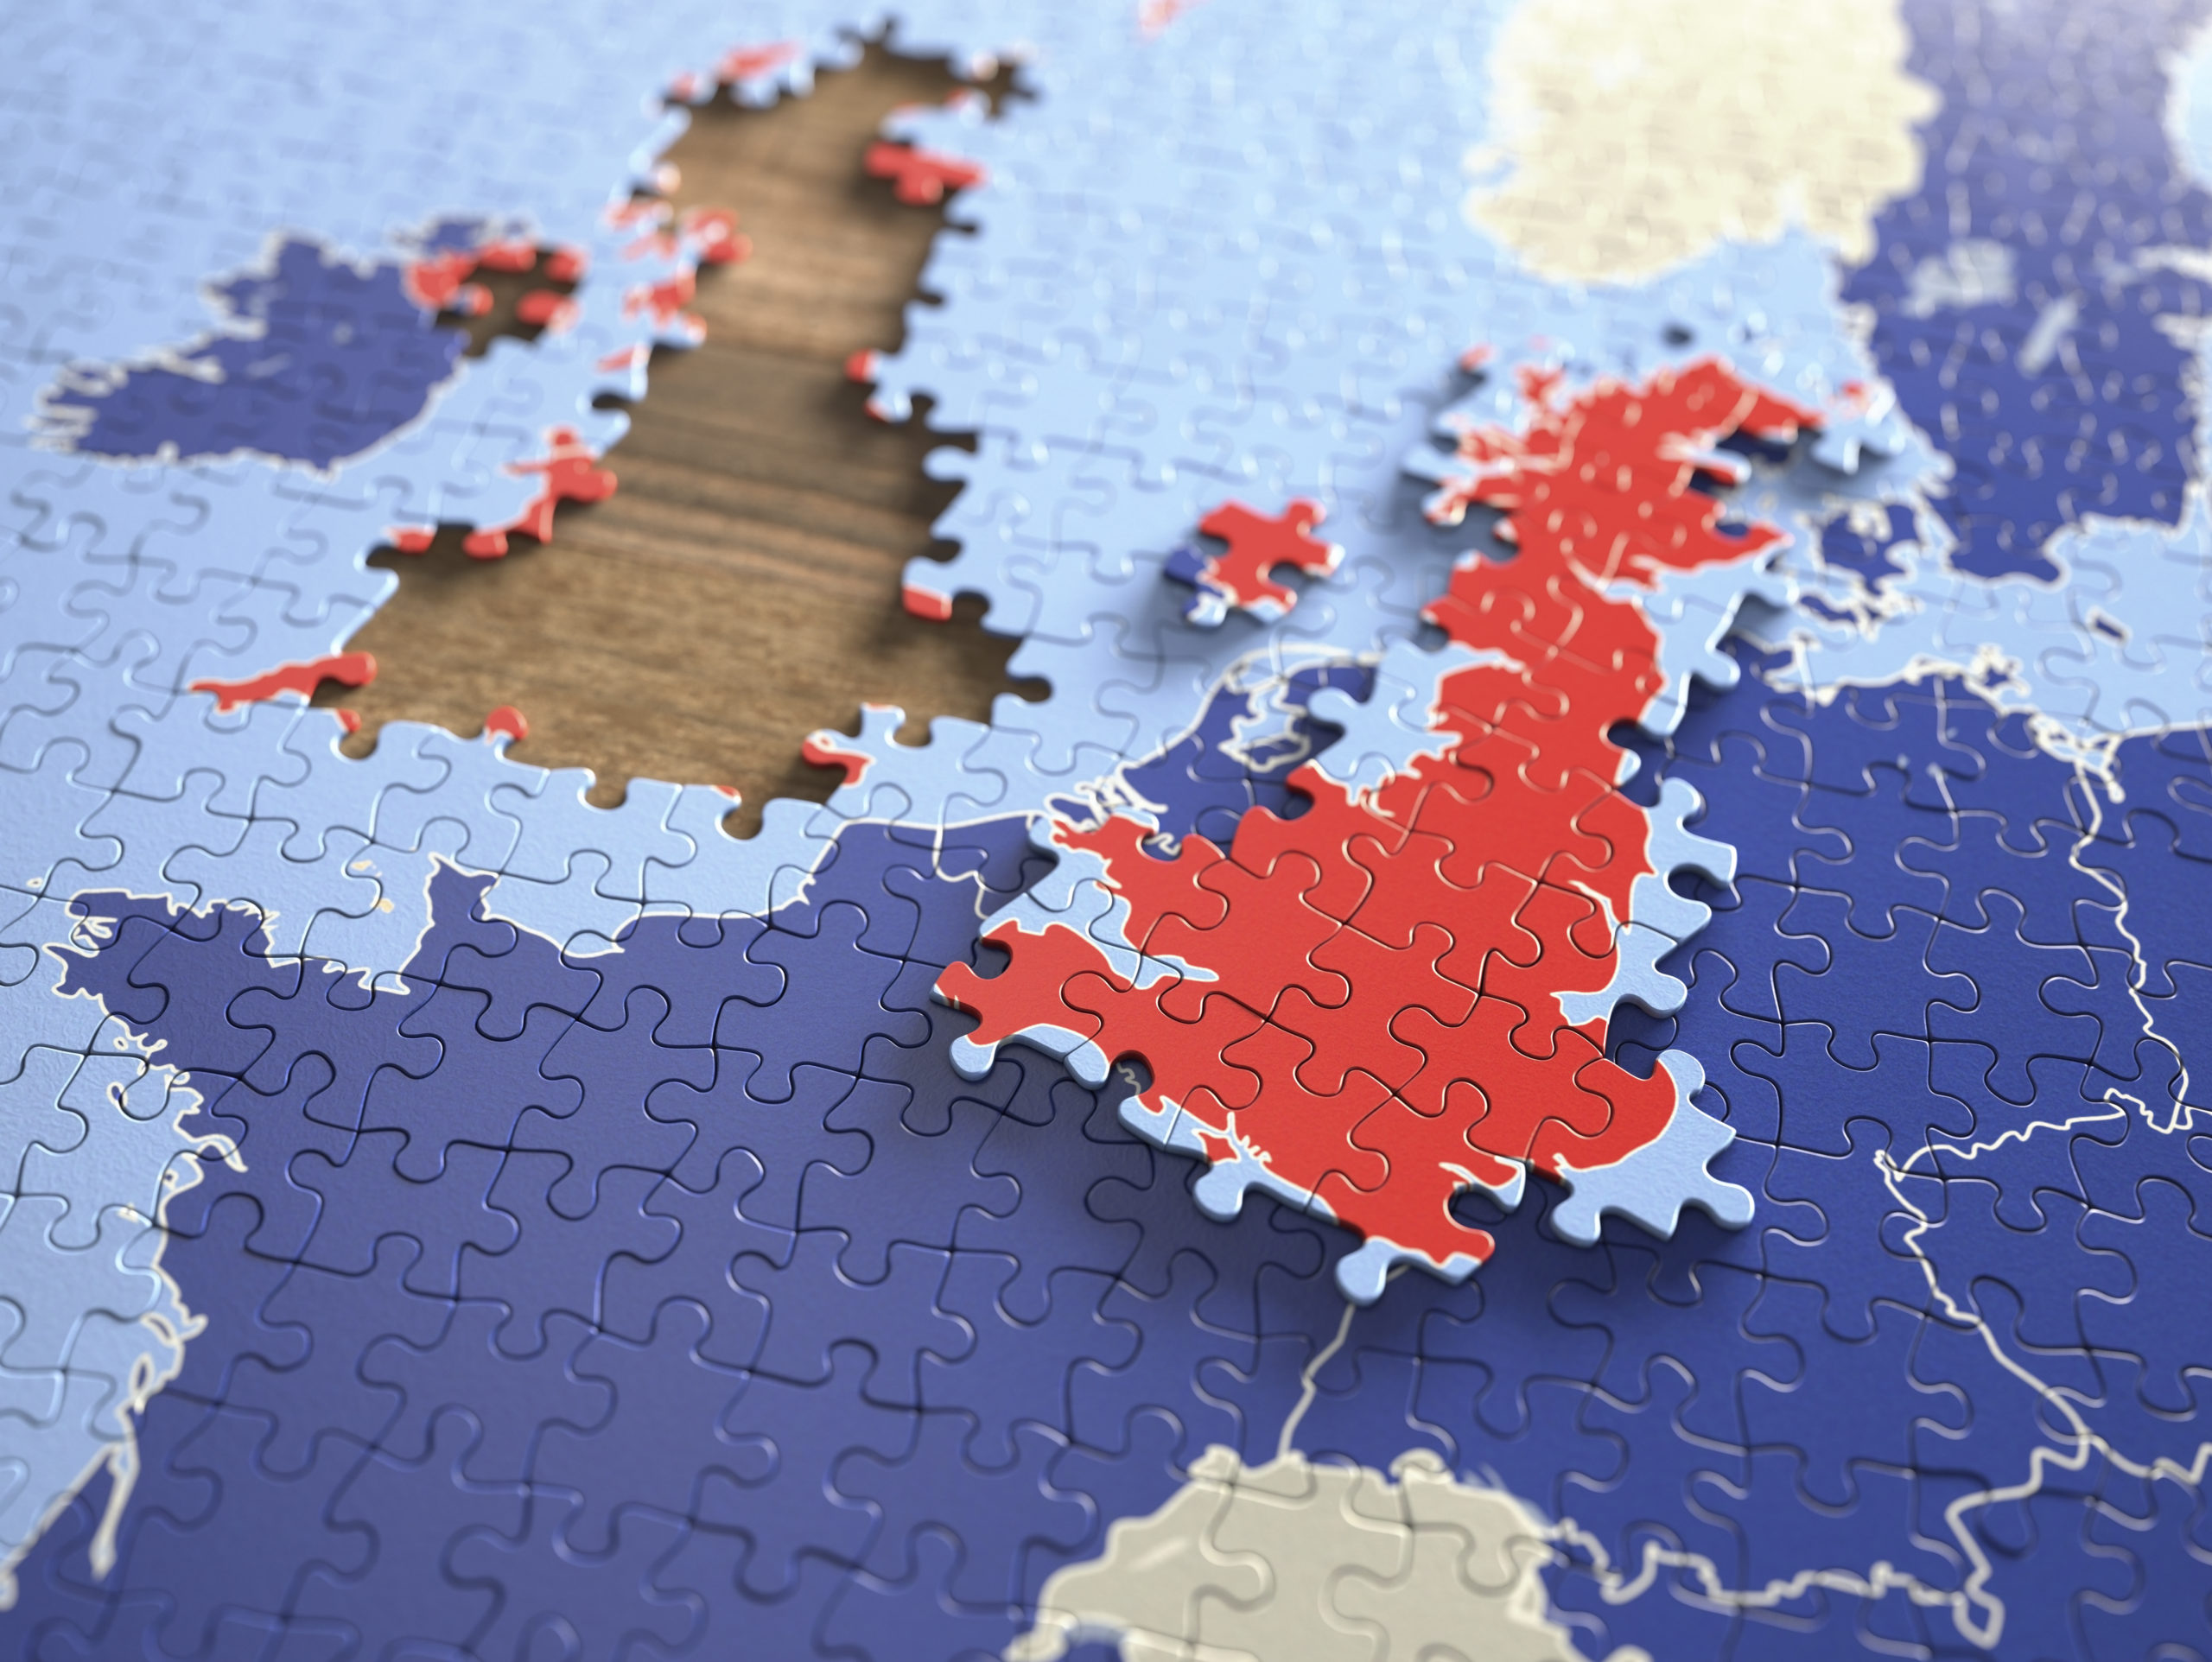 08/12 – Crunch time for Brexit decision